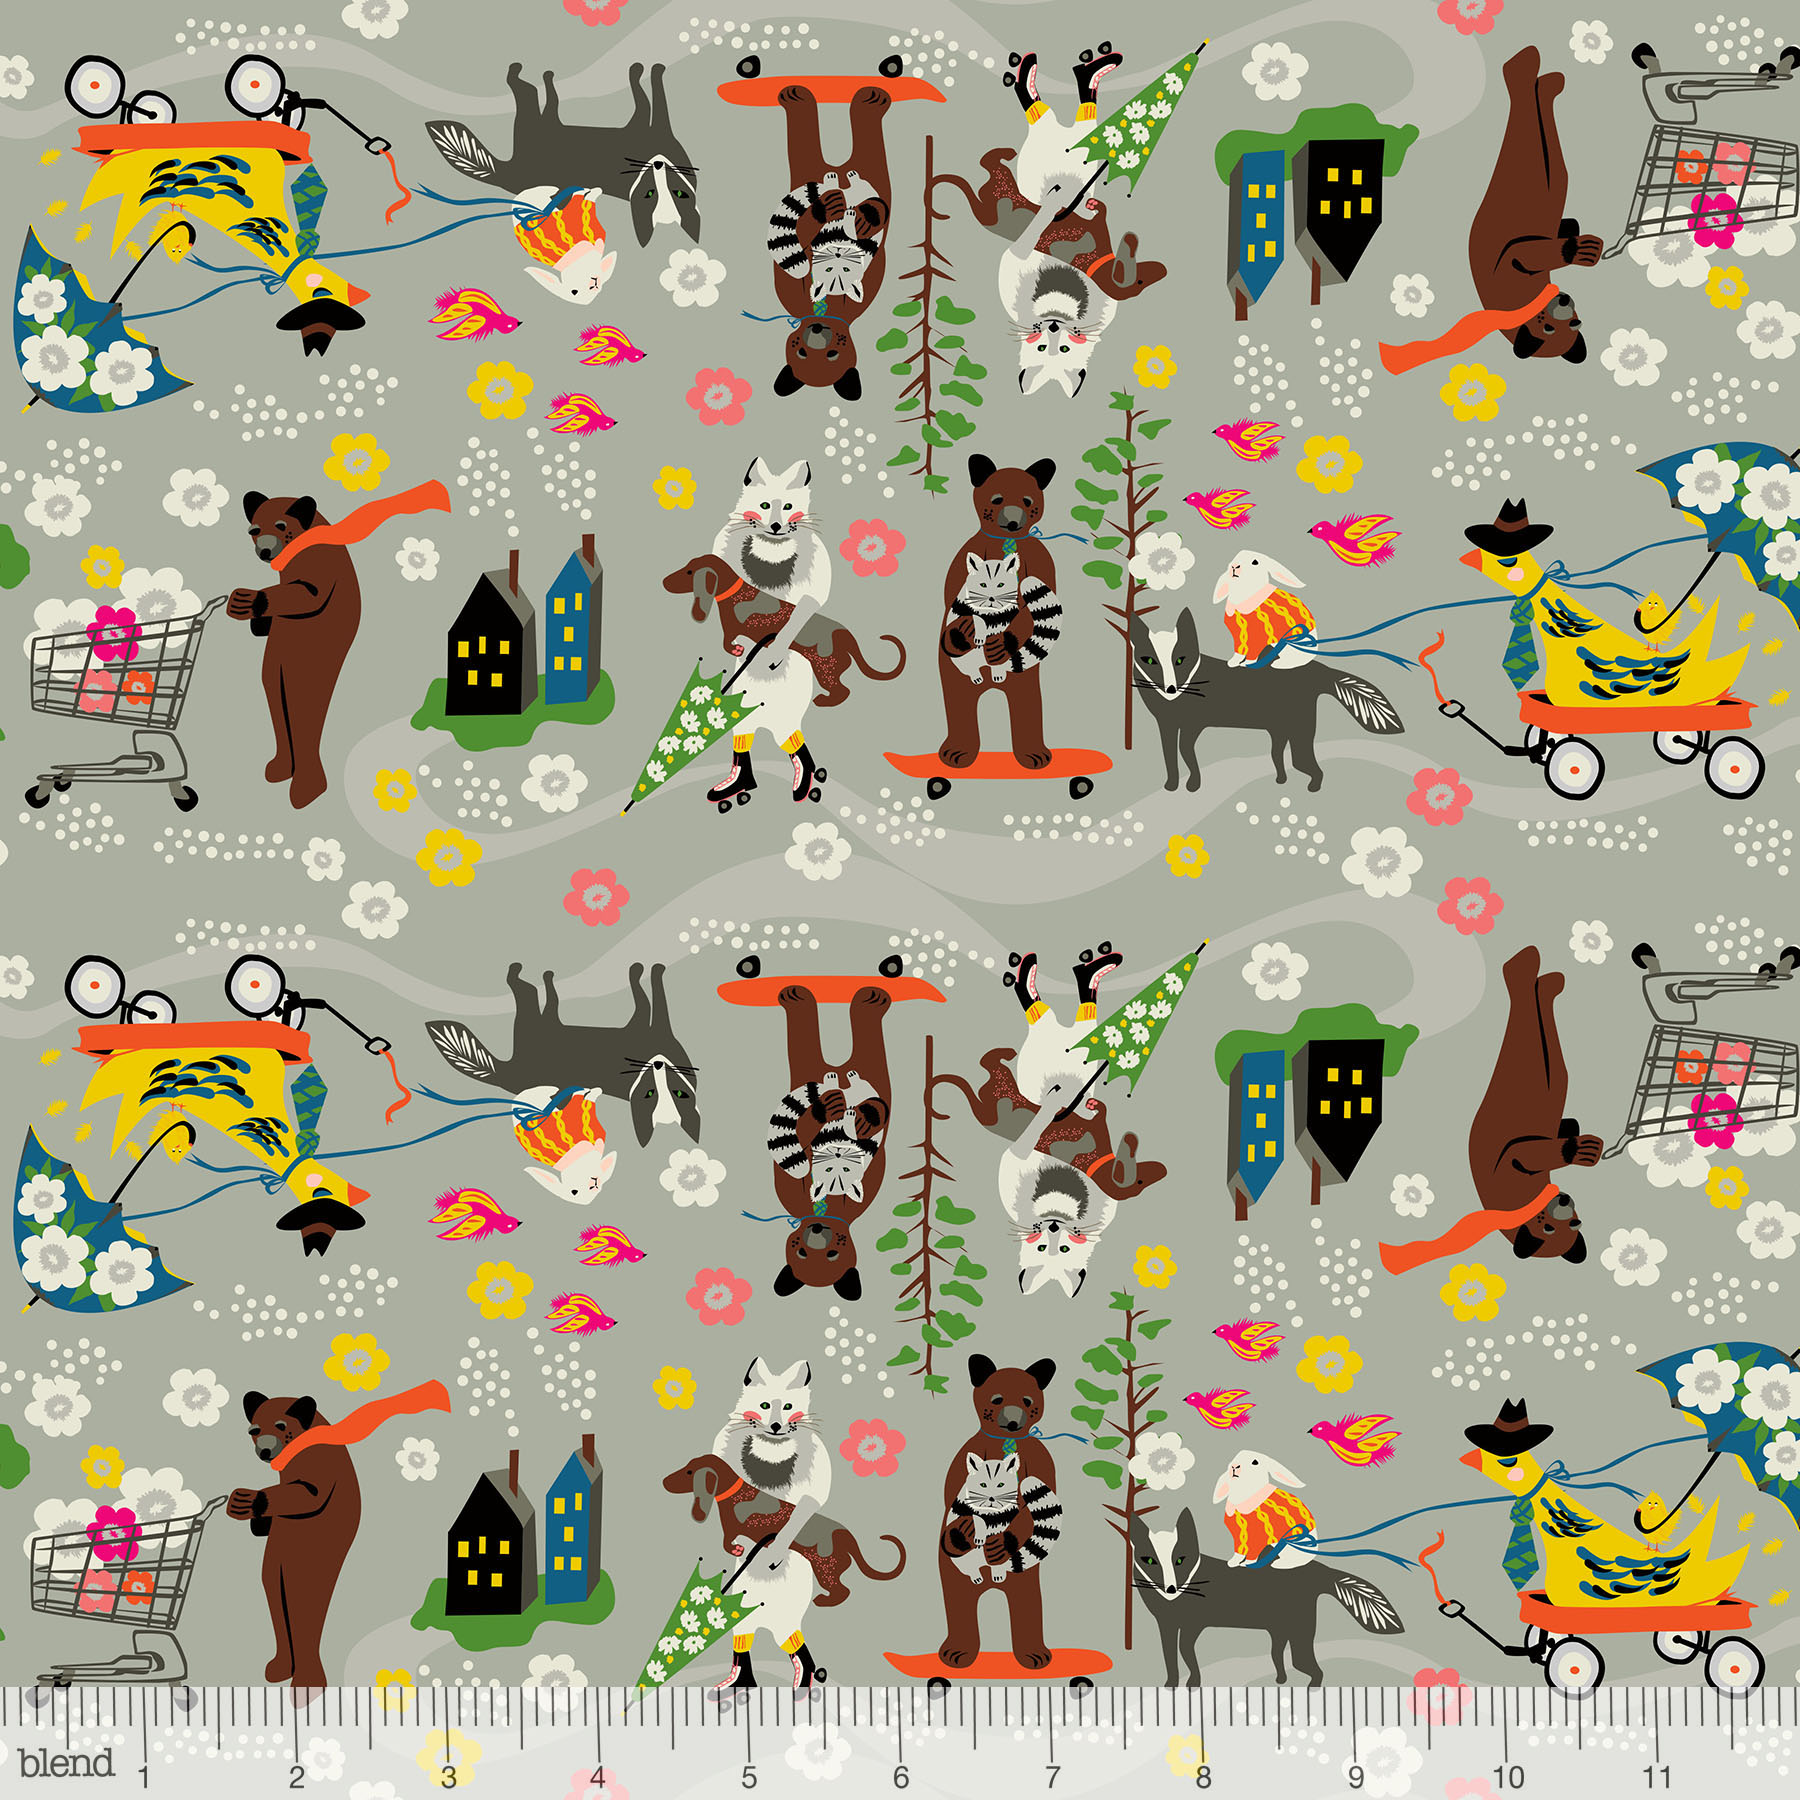 Car Pool in Grey by Elizabeth Grubaugh from the Caravan collection for Blend #126.102.01.1